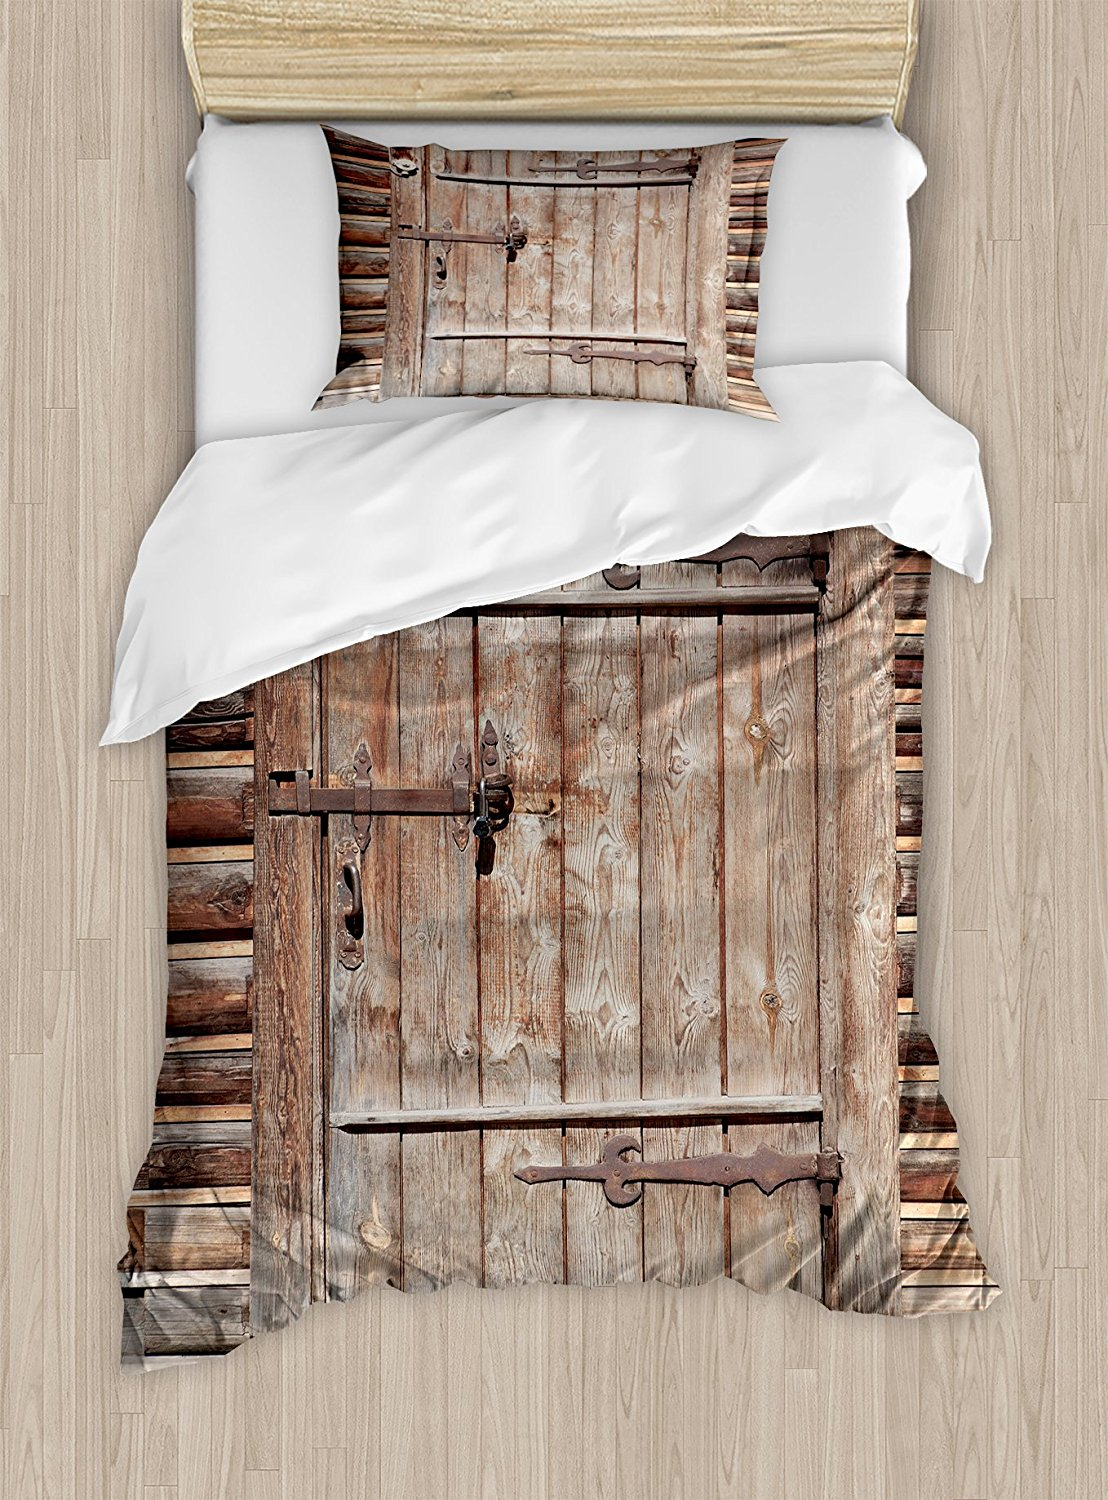 Rustic duvet cover set timber rustic door in wall of an old log house ancient abandoned building entrance gate decor bedding set in bedding sets from home